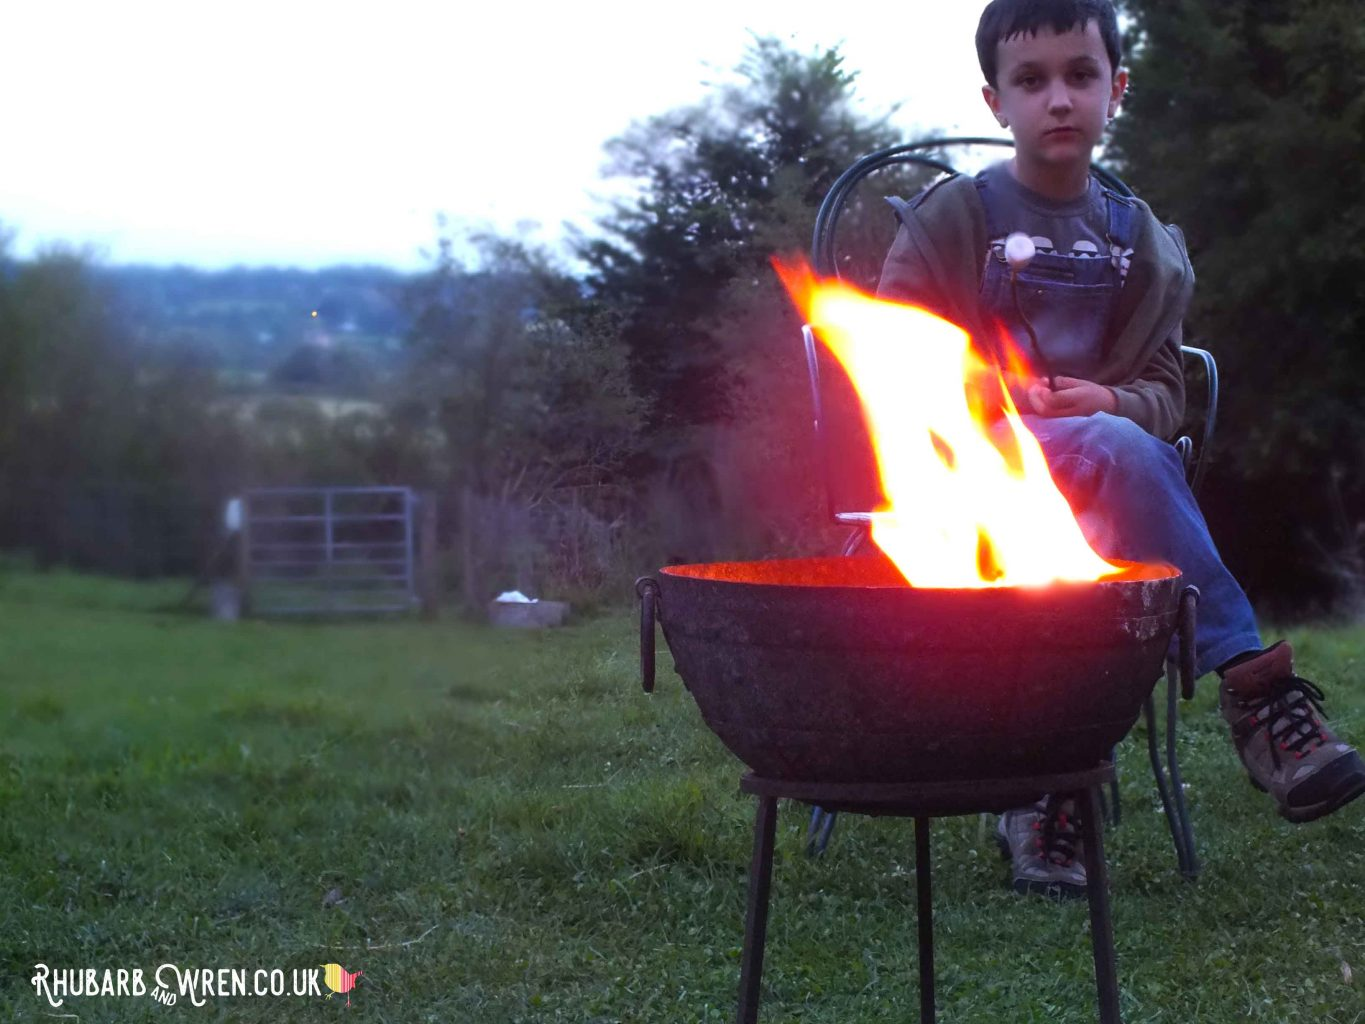 Boy sitting by campfire at dusk, Farrs Meadow, Dorset, UK